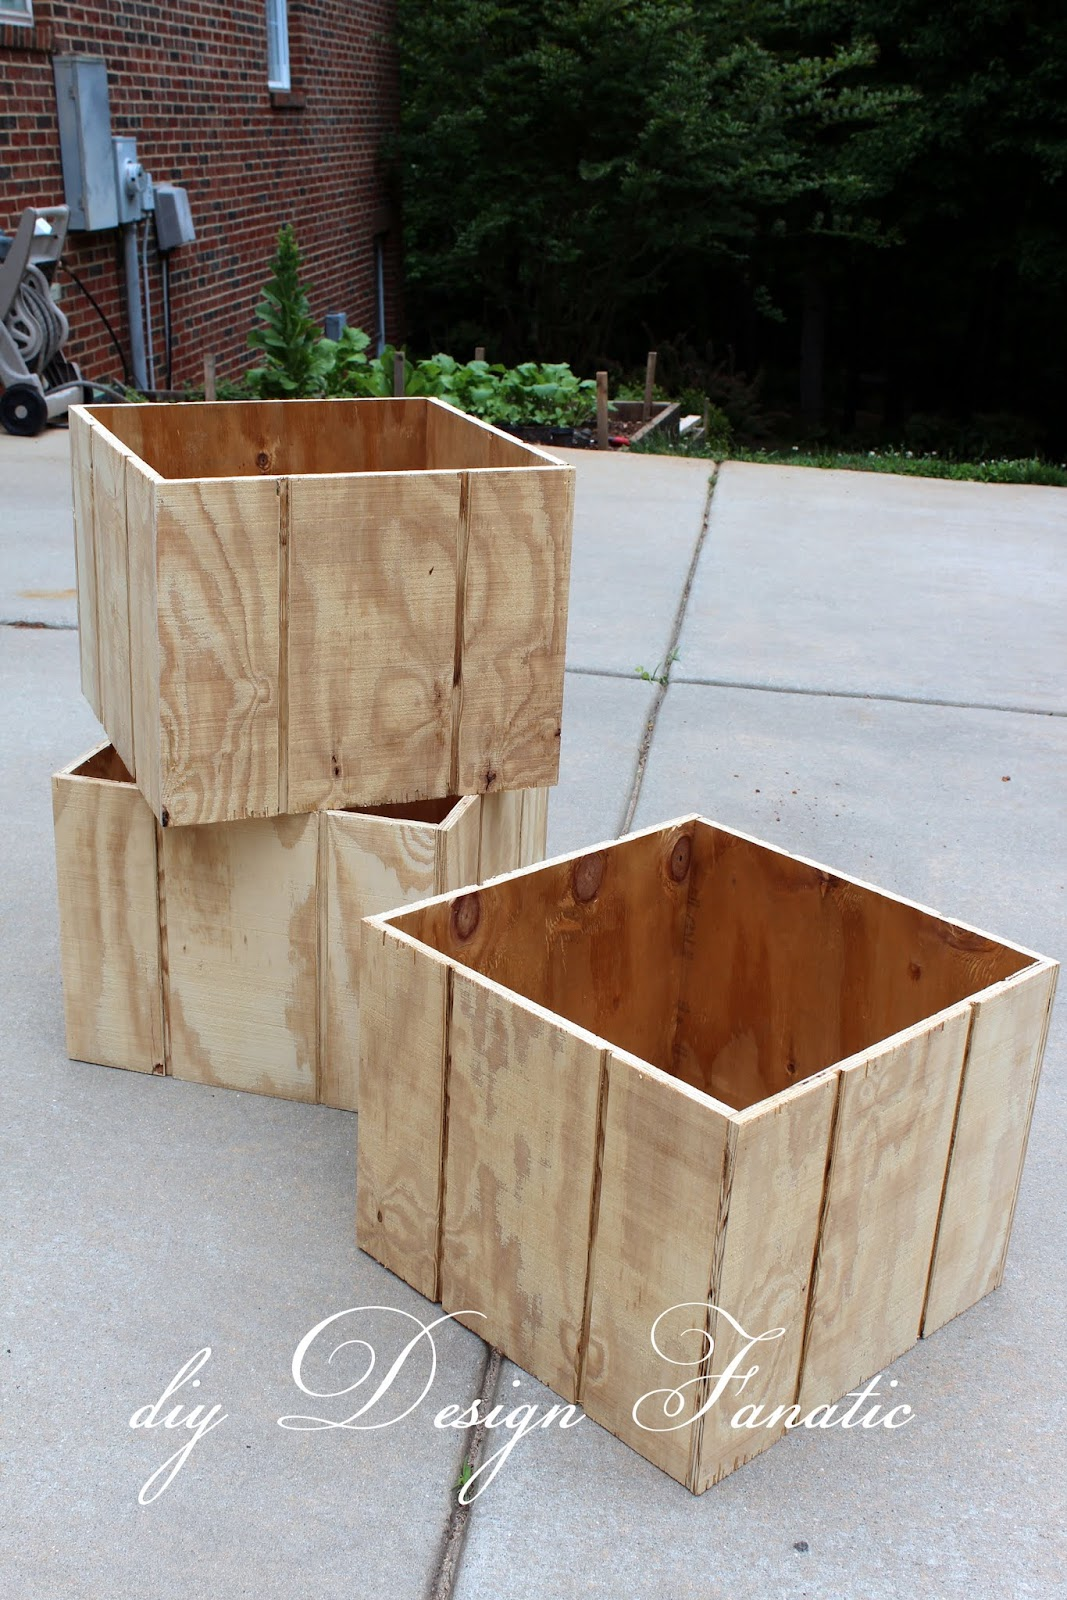 He was able to make 3 boxes with one 4 x 8 sheet of t-111.